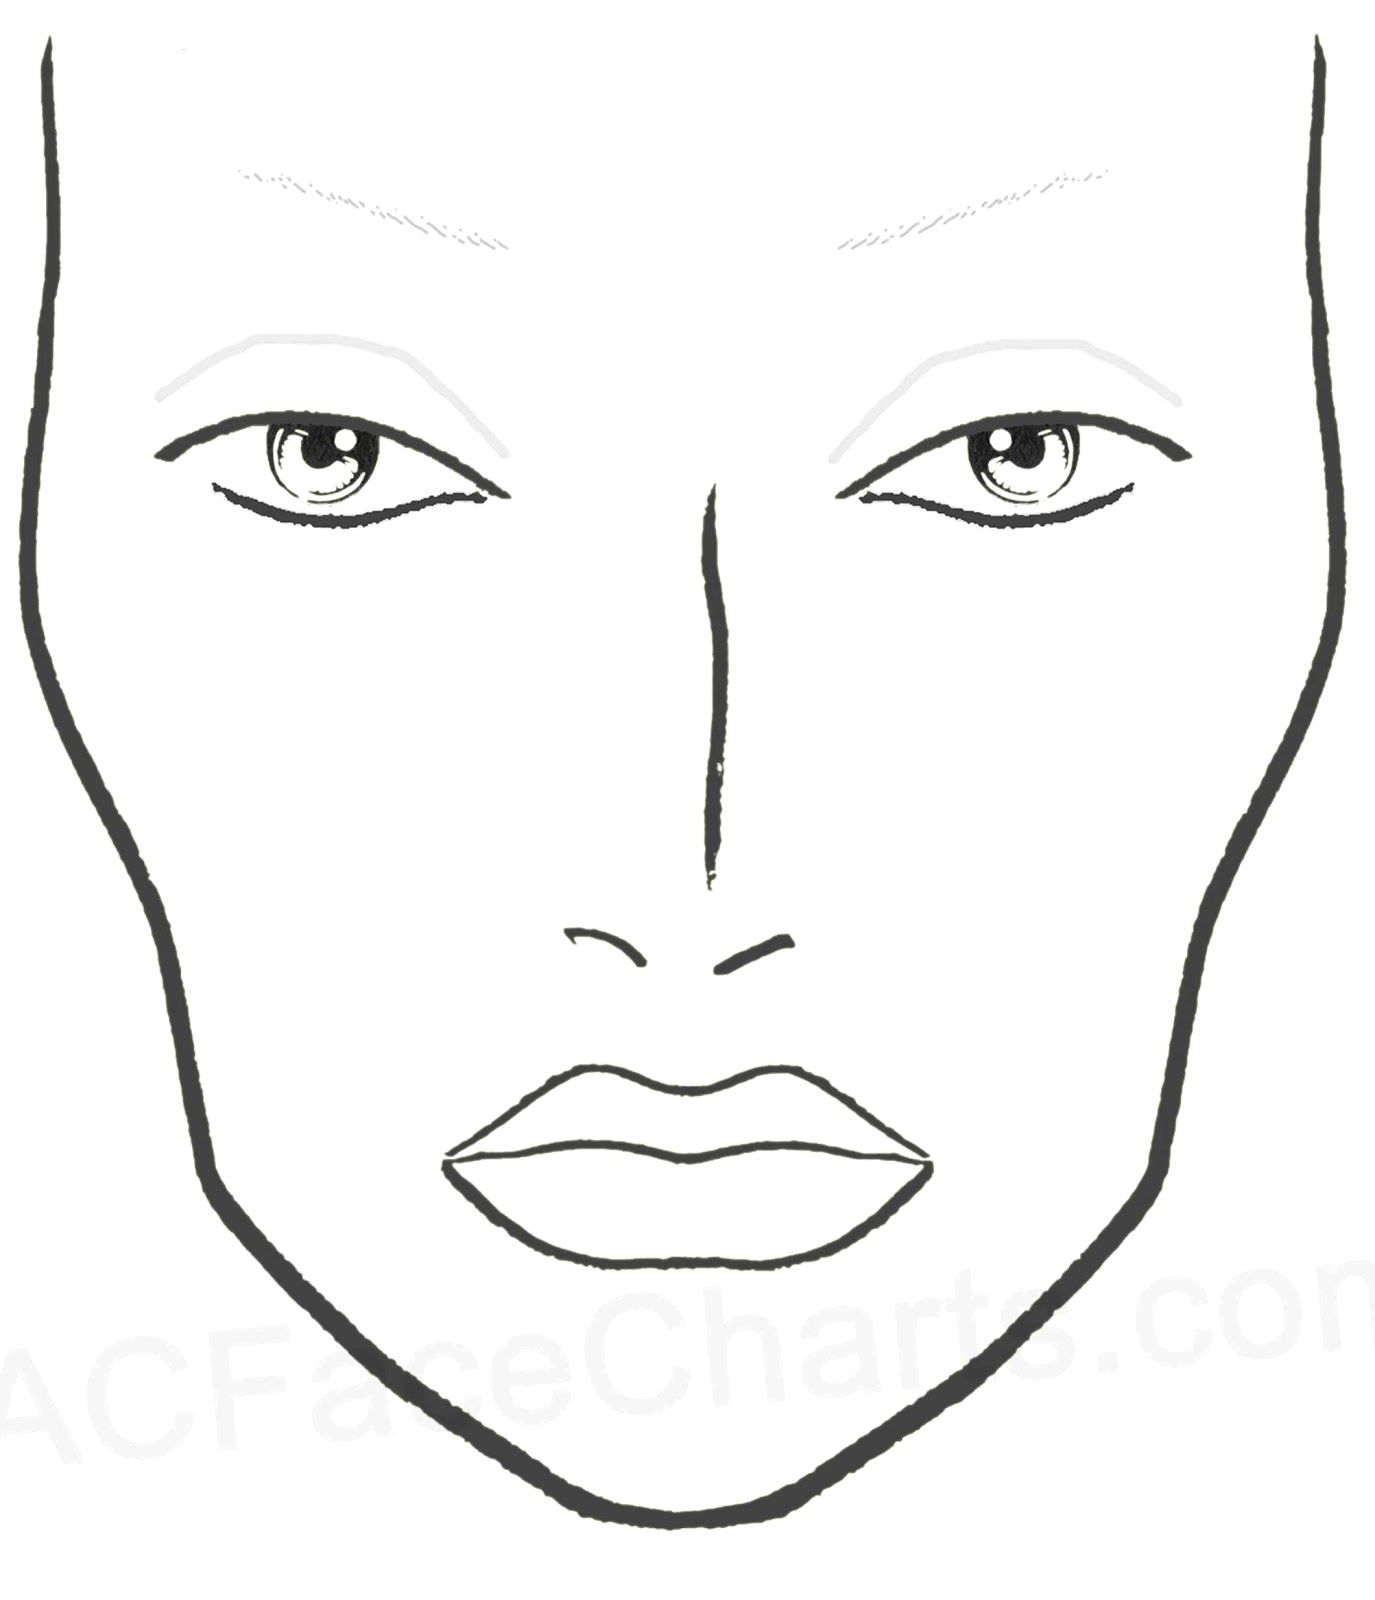 Blank mac face charts printable also makeup in rh pinterest